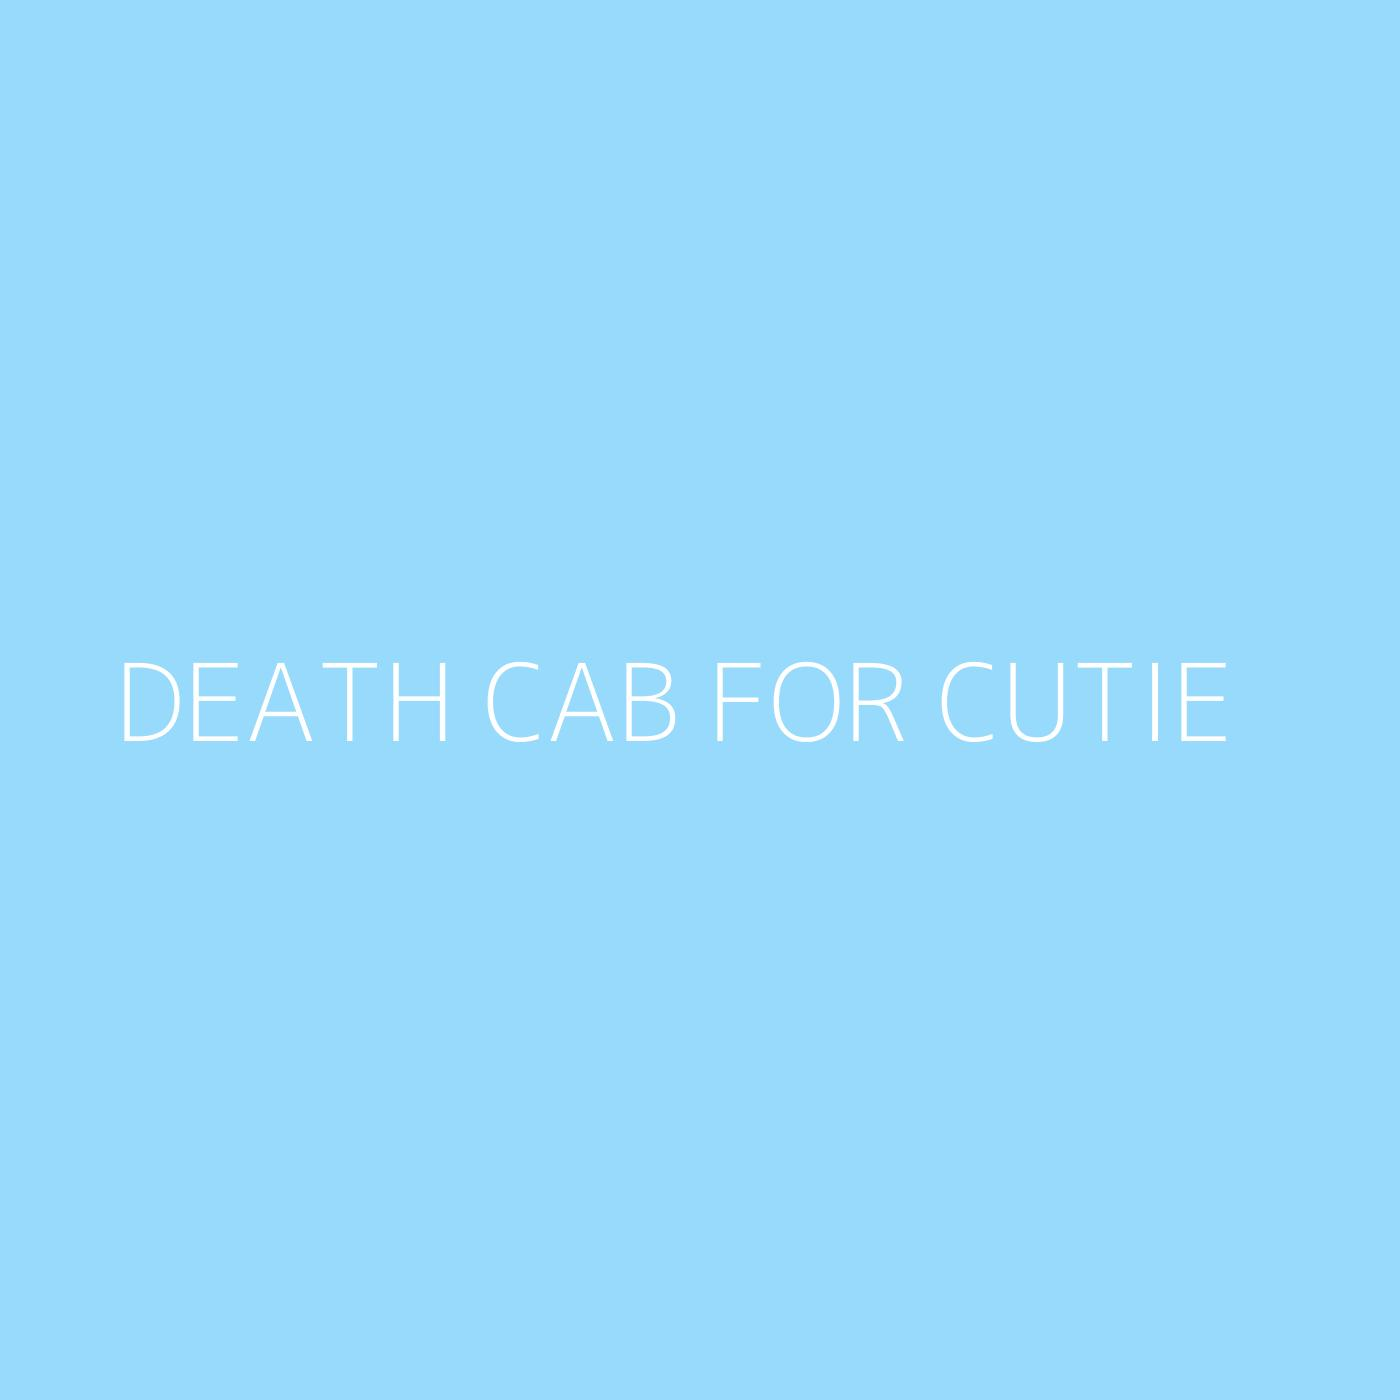 Death Cab for Cutie Playlist Artwork